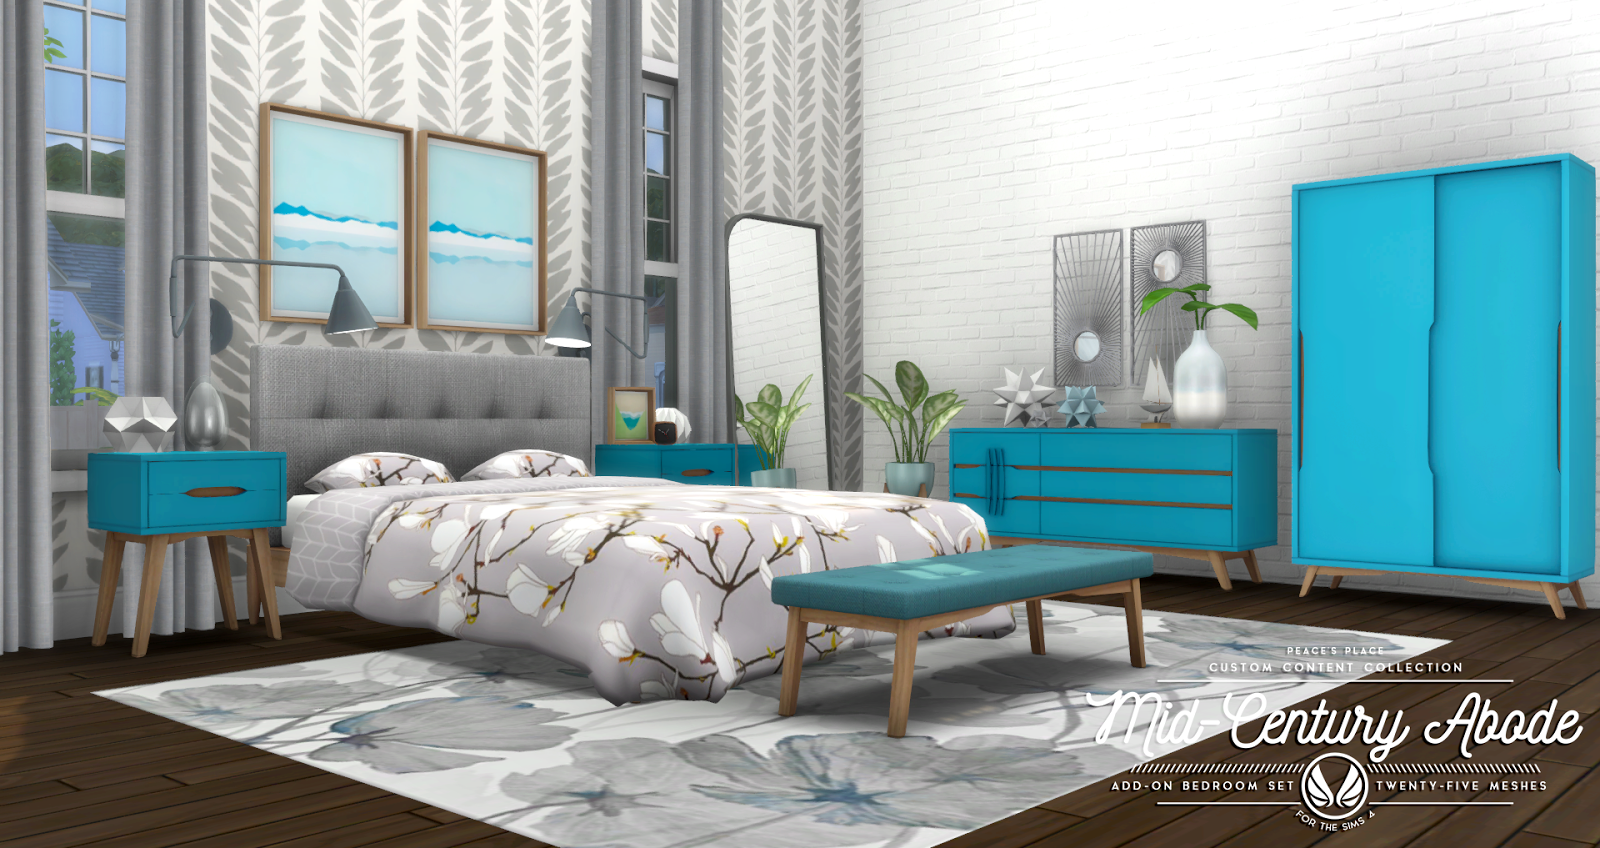 simsational designs mid century abode add on bedroom set